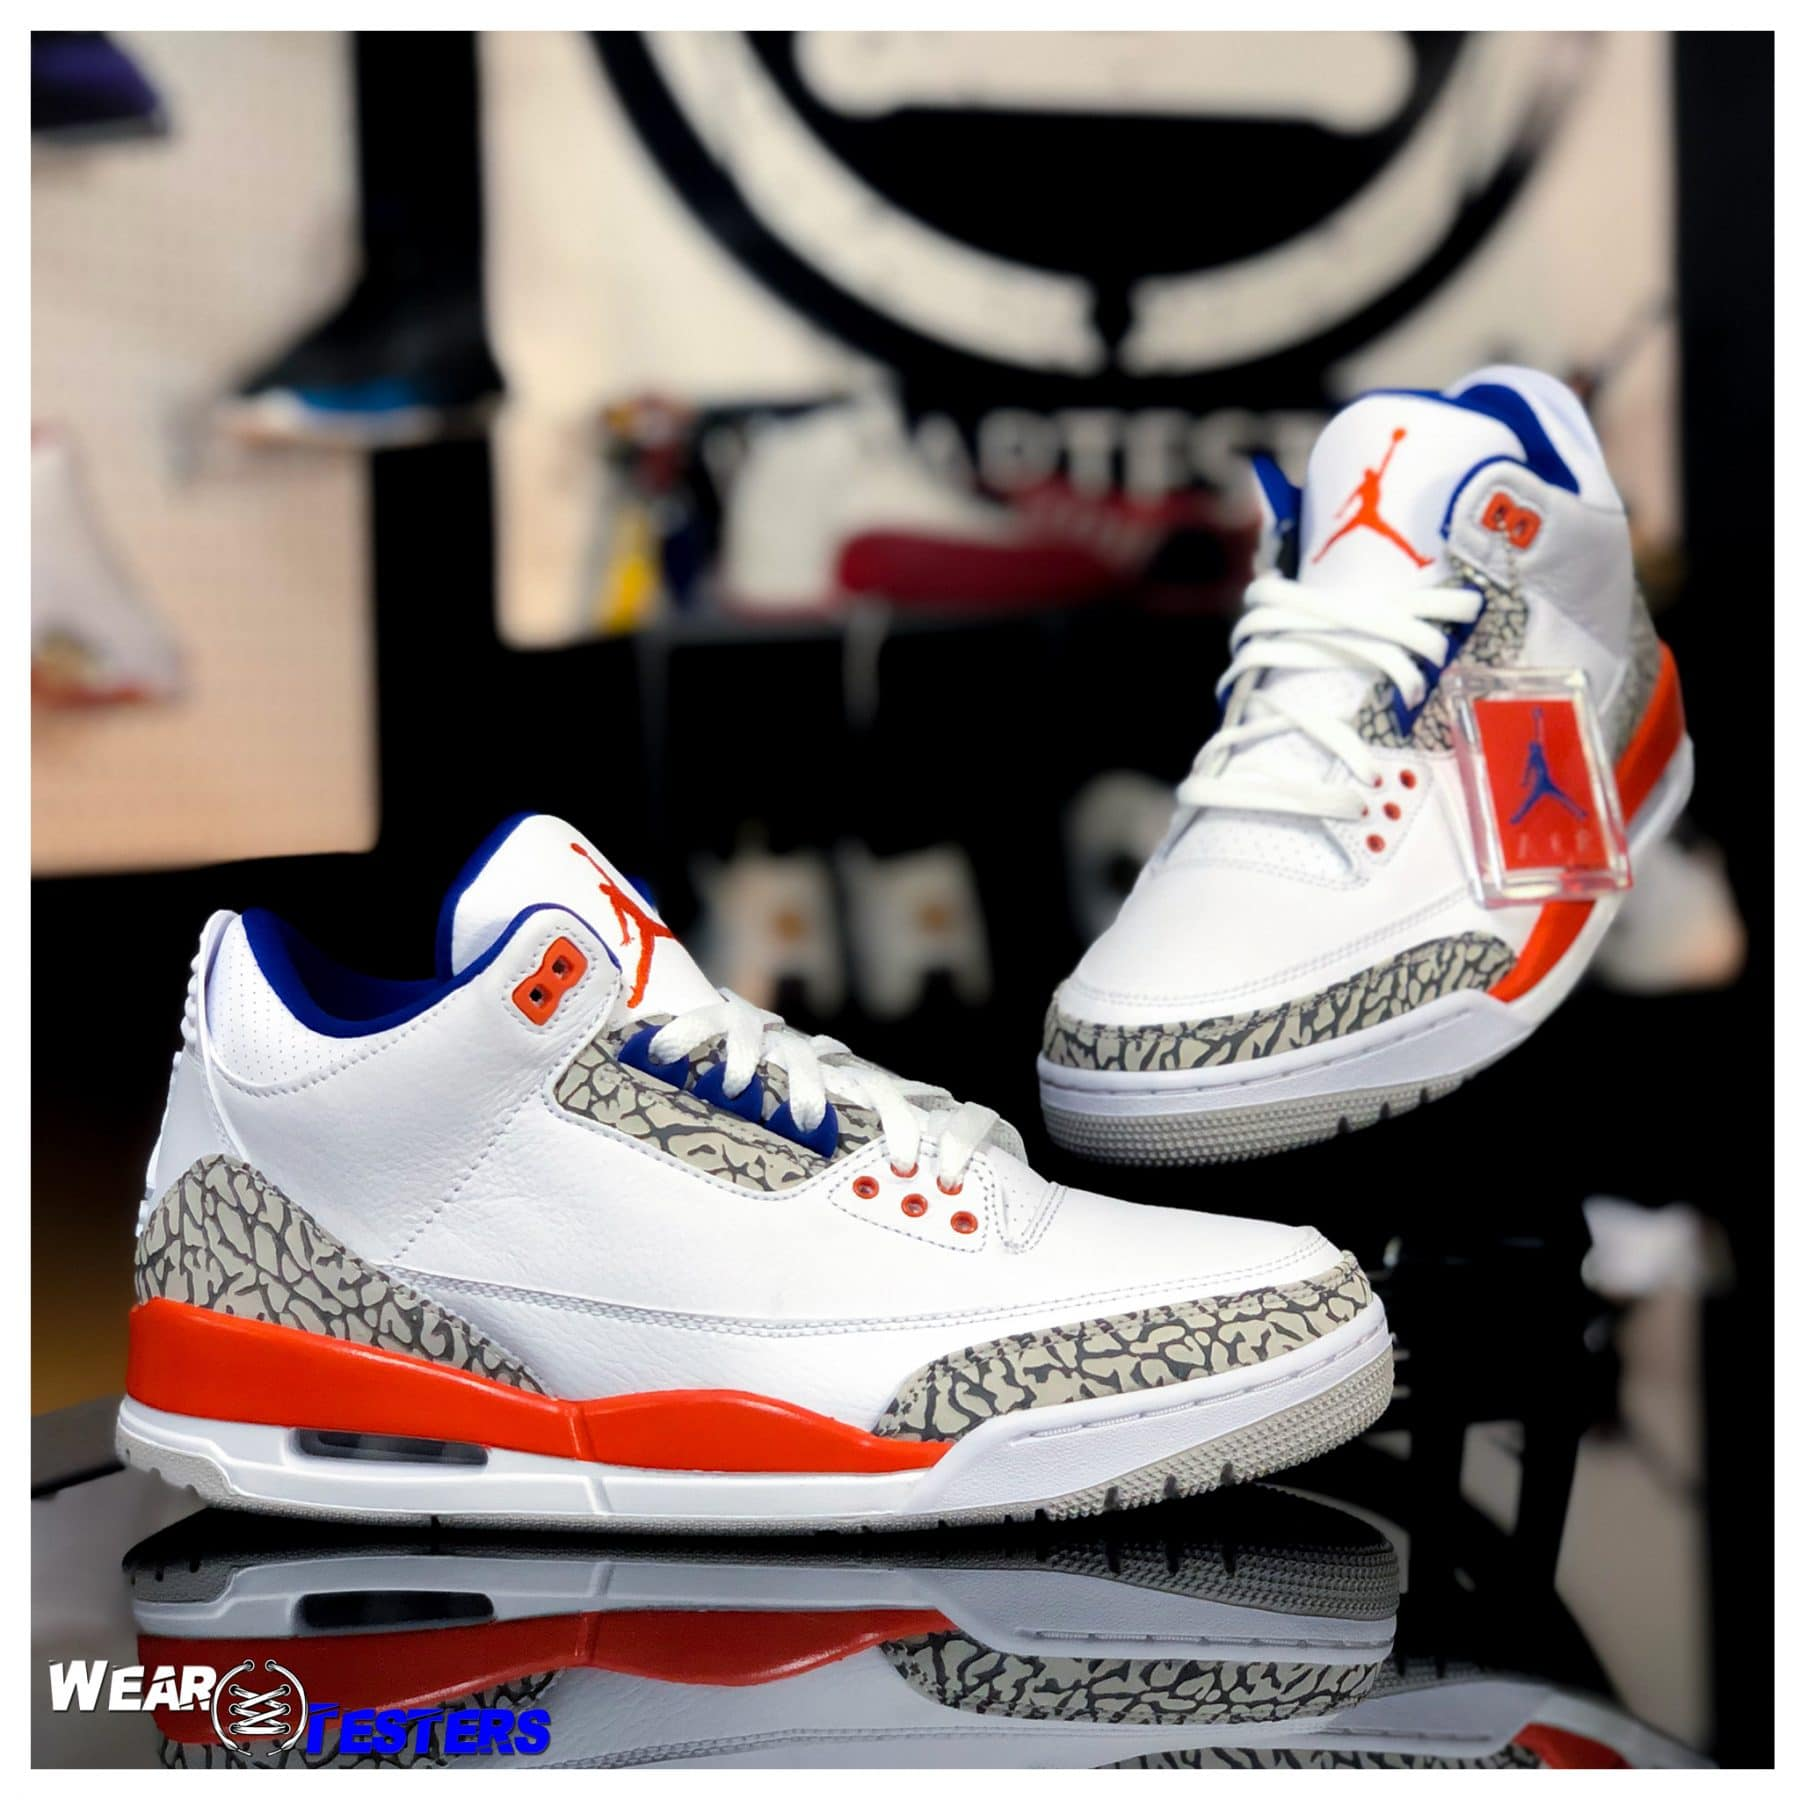 buy online dd56f afb6c Air Jordan 3 'Knicks' | Detailed Look and Review - WearTesters